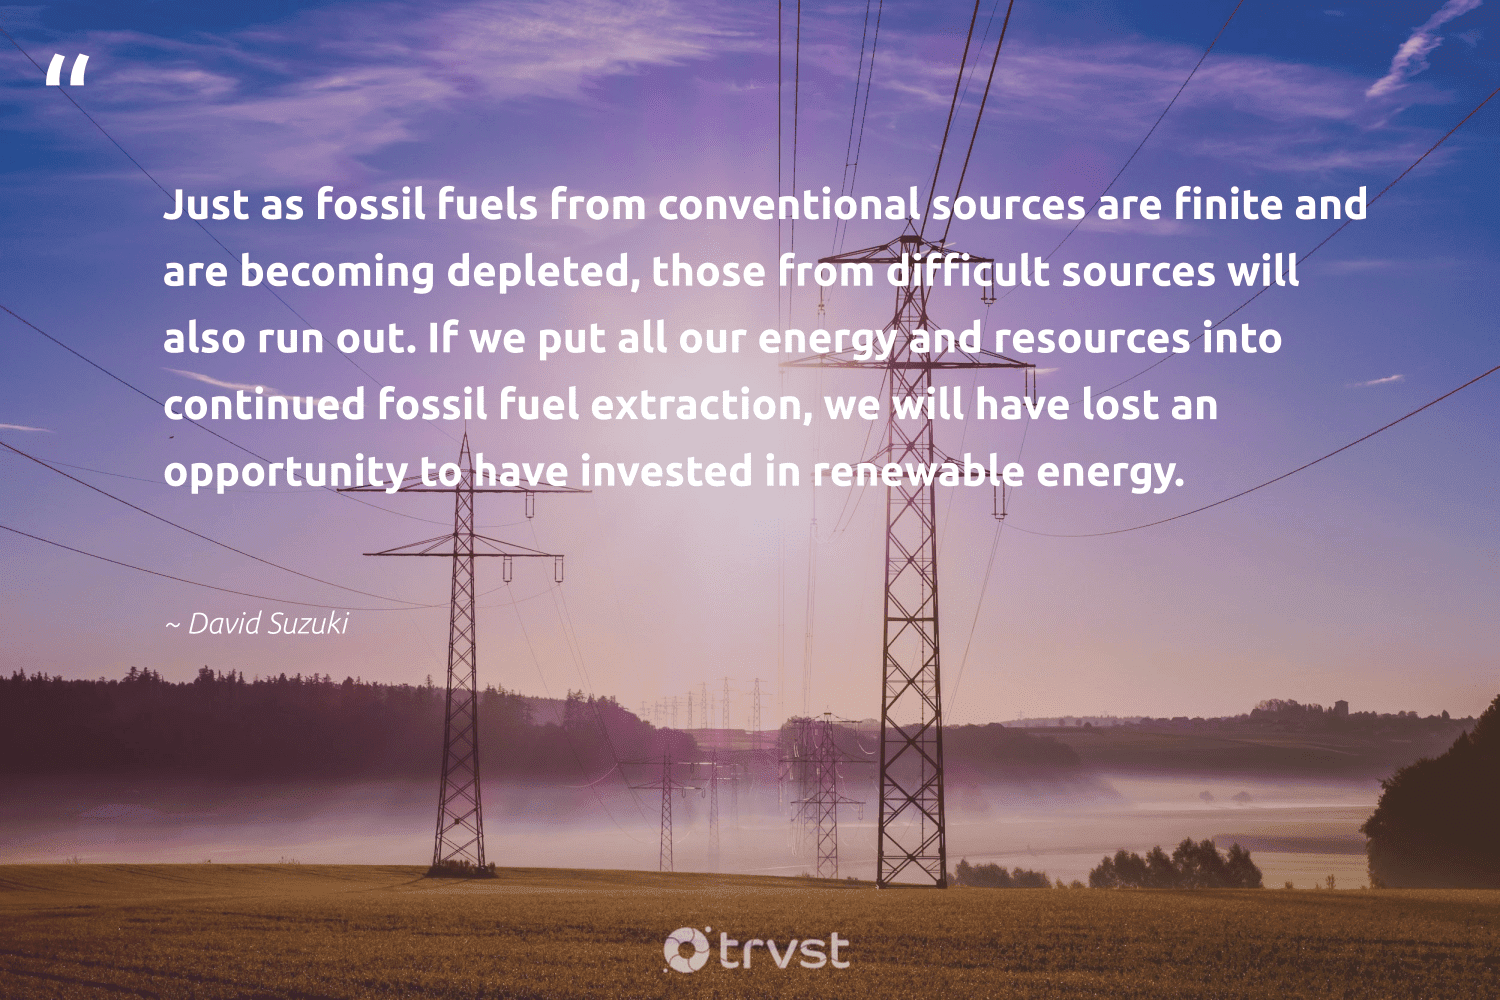 """""""Just as fossil fuels from conventional sources are finite and are becoming depleted, those from difficult sources will also run out. If we put all our energy and resources into continued fossil fuel extraction, we will have lost an opportunity to have invested in renewable energy.""""  - David Suzuki #trvst #quotes #renewableenergy #energy #renewable #fossilfuels #fossil #renewables #cleanenergy #carbon #climateaction #bethechange"""